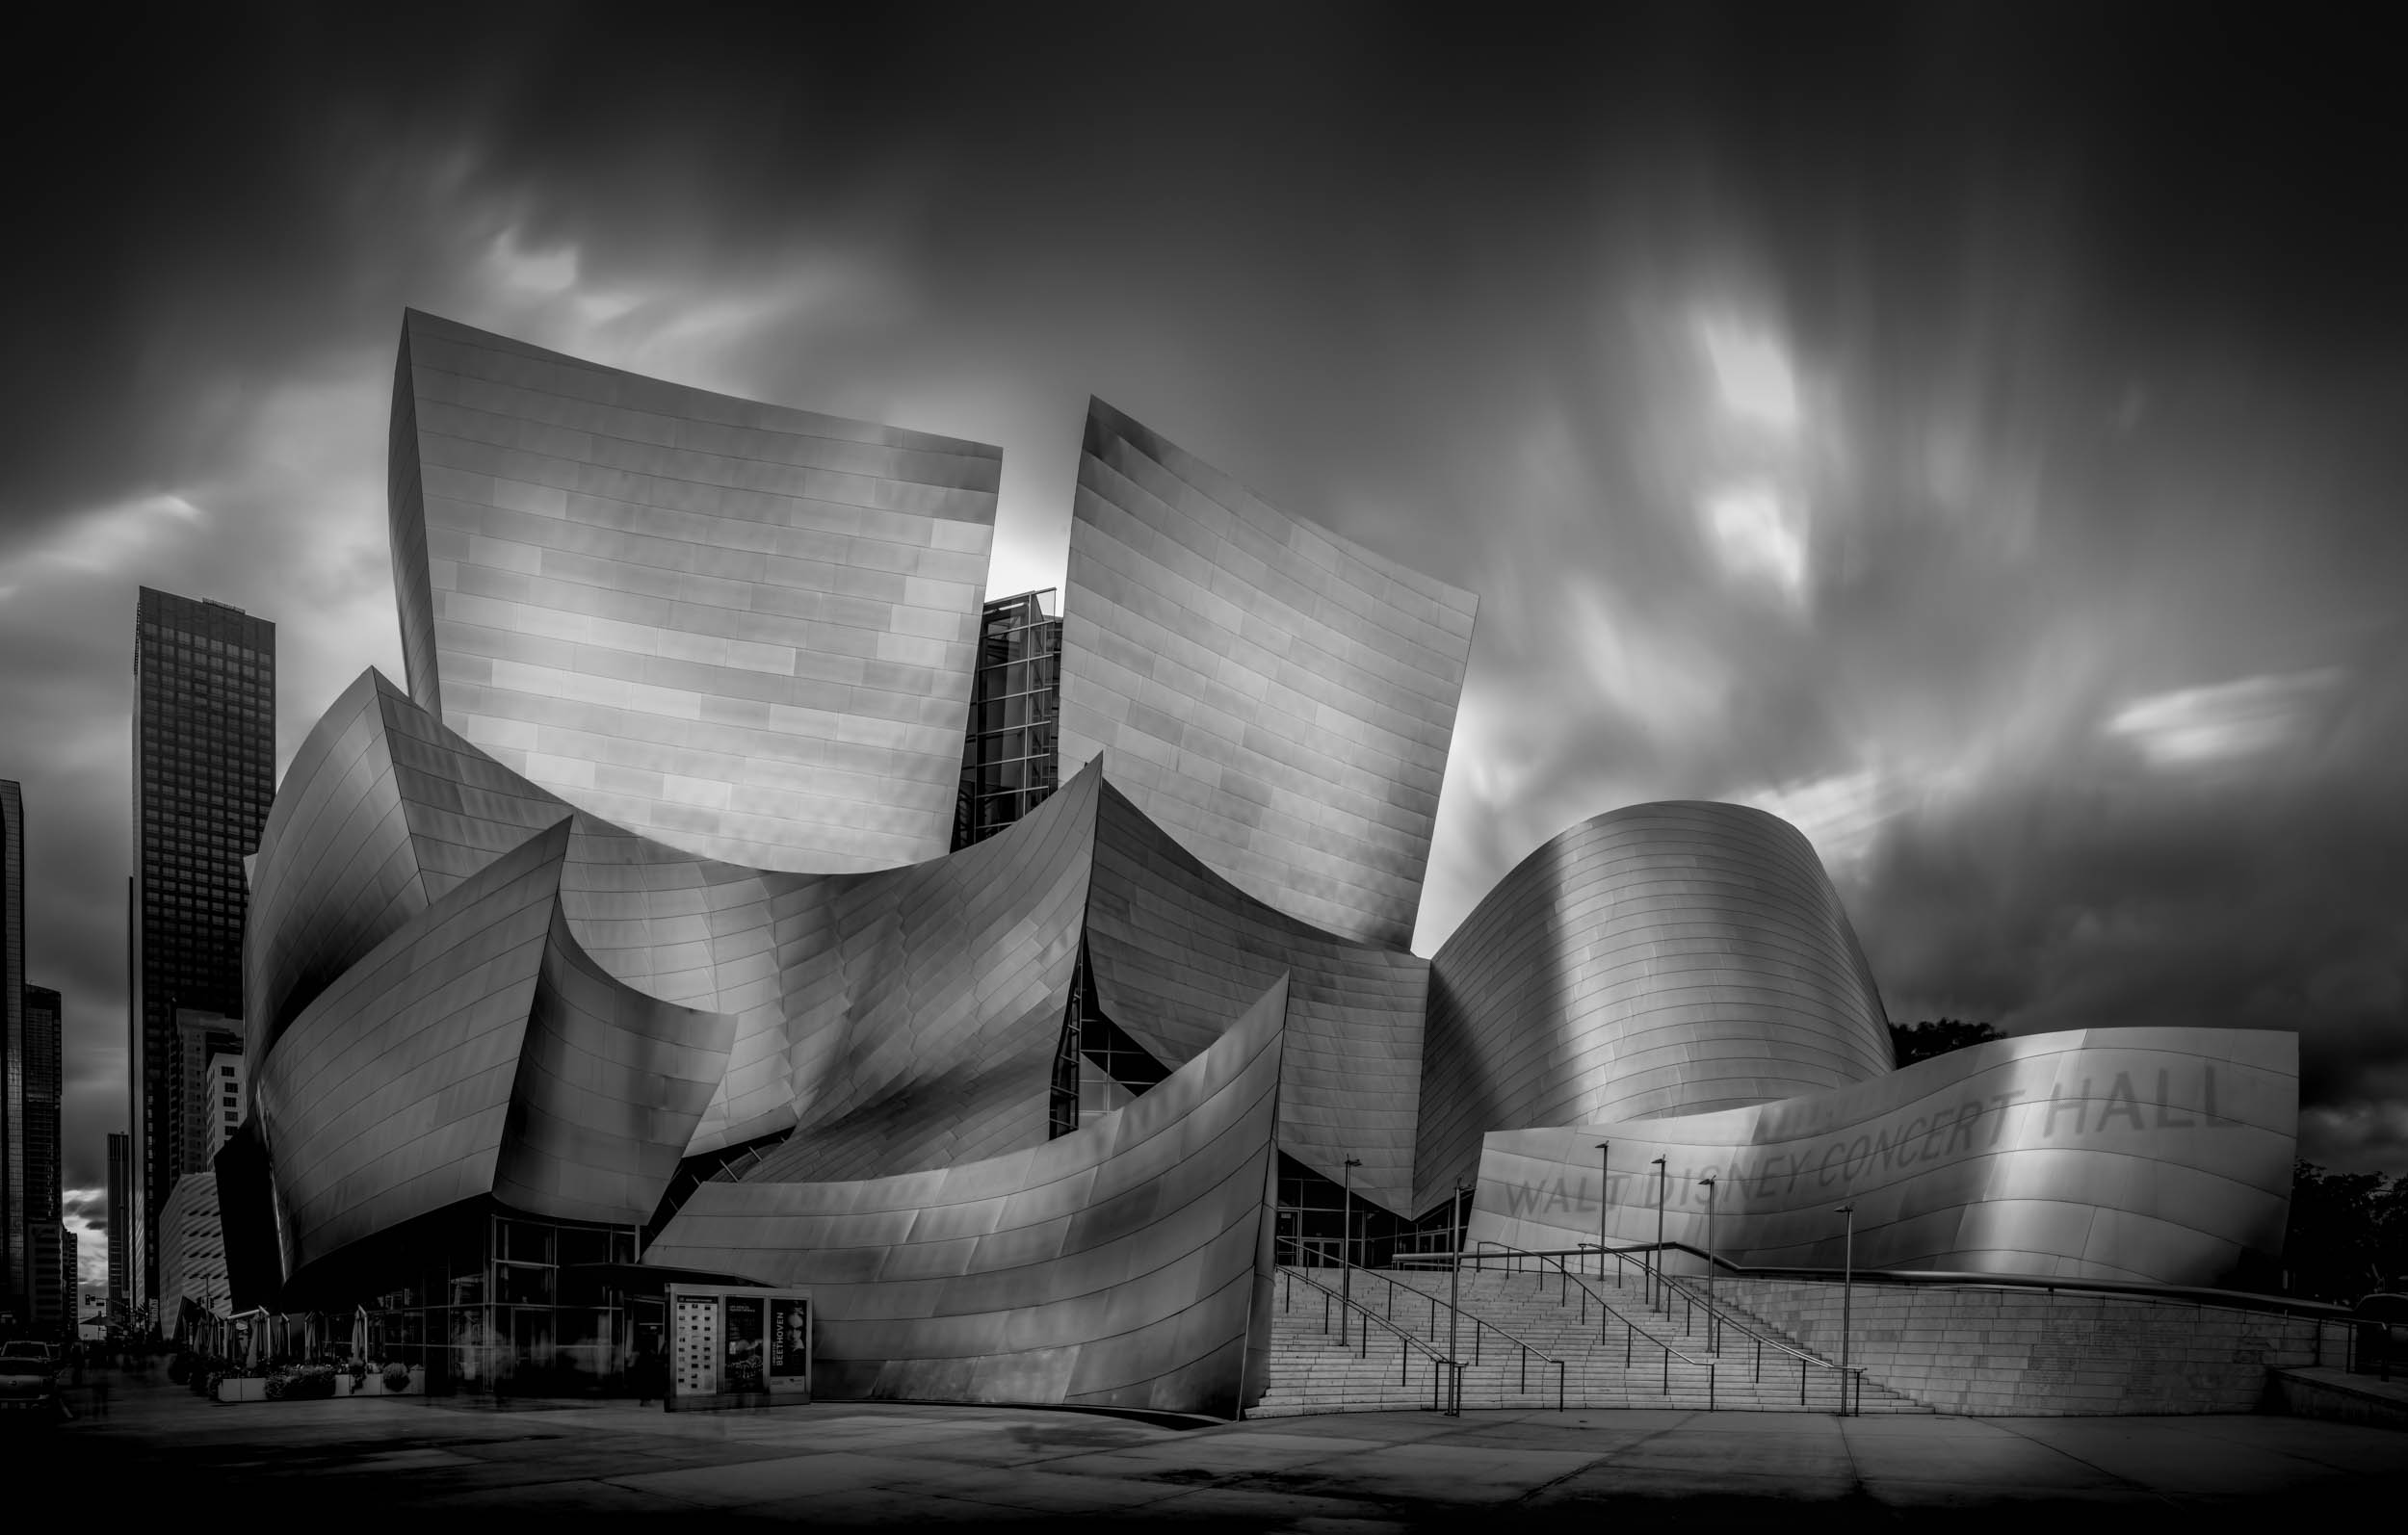 Walt Disney Concert Hall, eight long exposures photography stitched together.